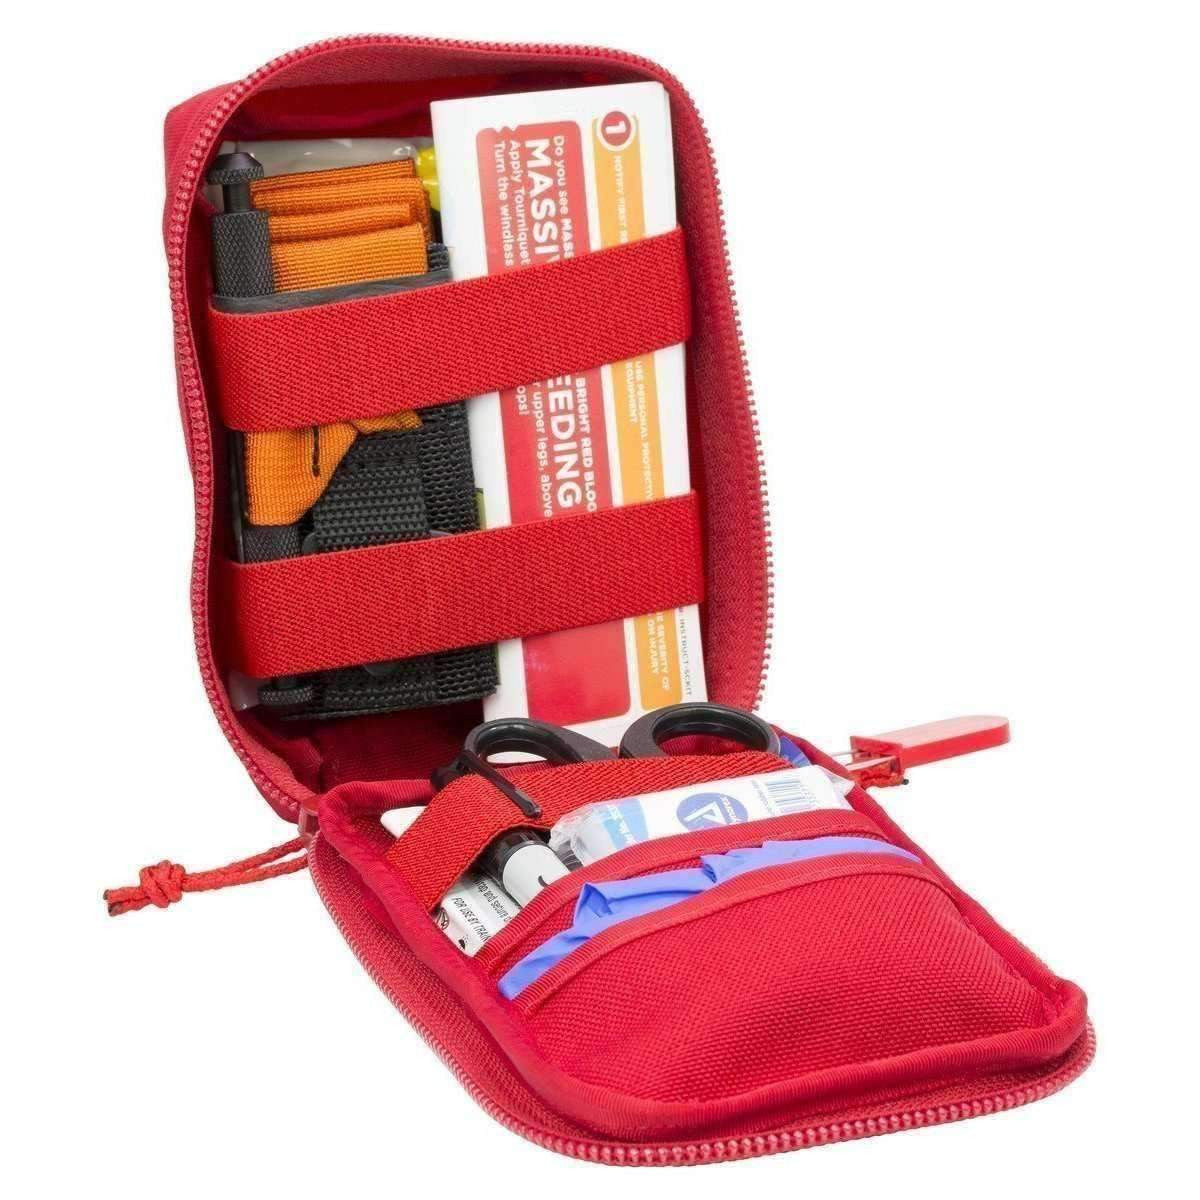 Tramedic,TRAMEDIC Bleeding Control Kit for Schools,medic-packs.